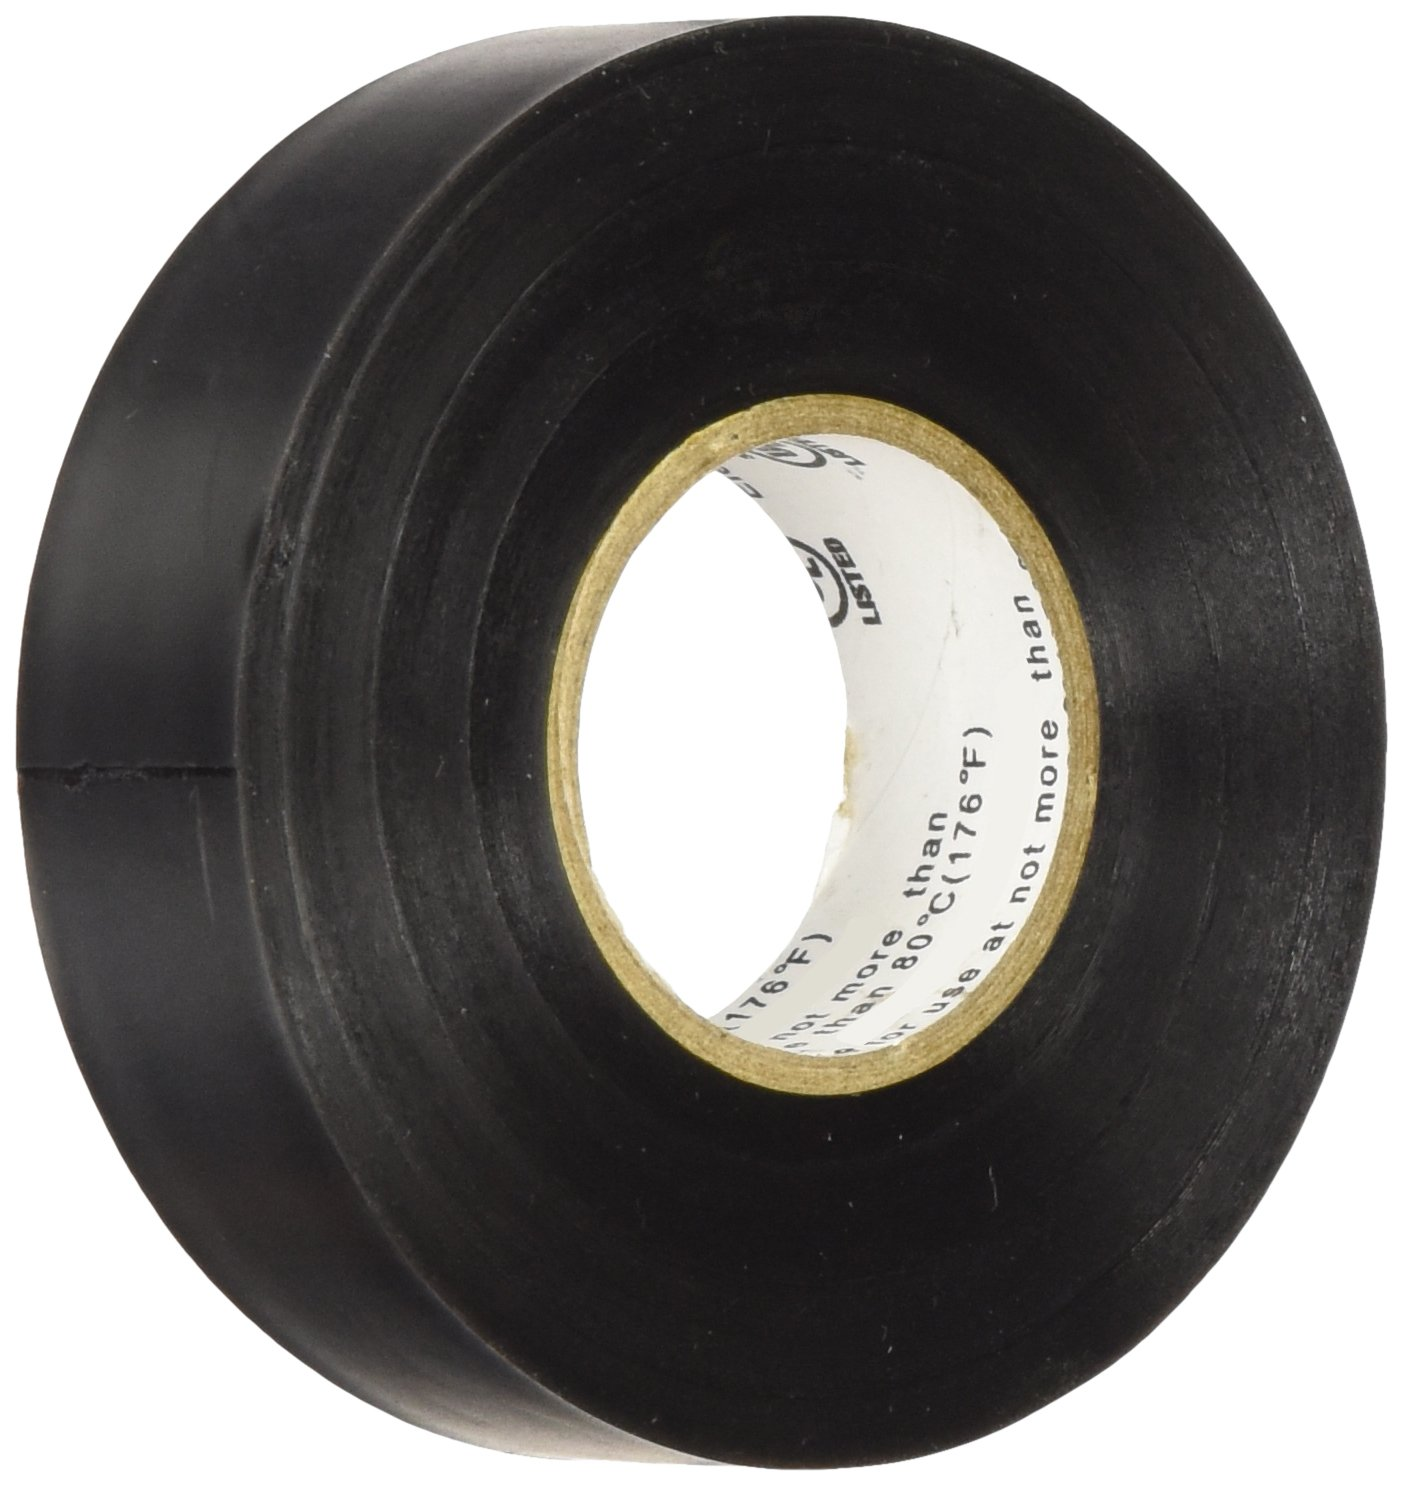 K-Tool International KTI (KTI-73510) Electrical Tape